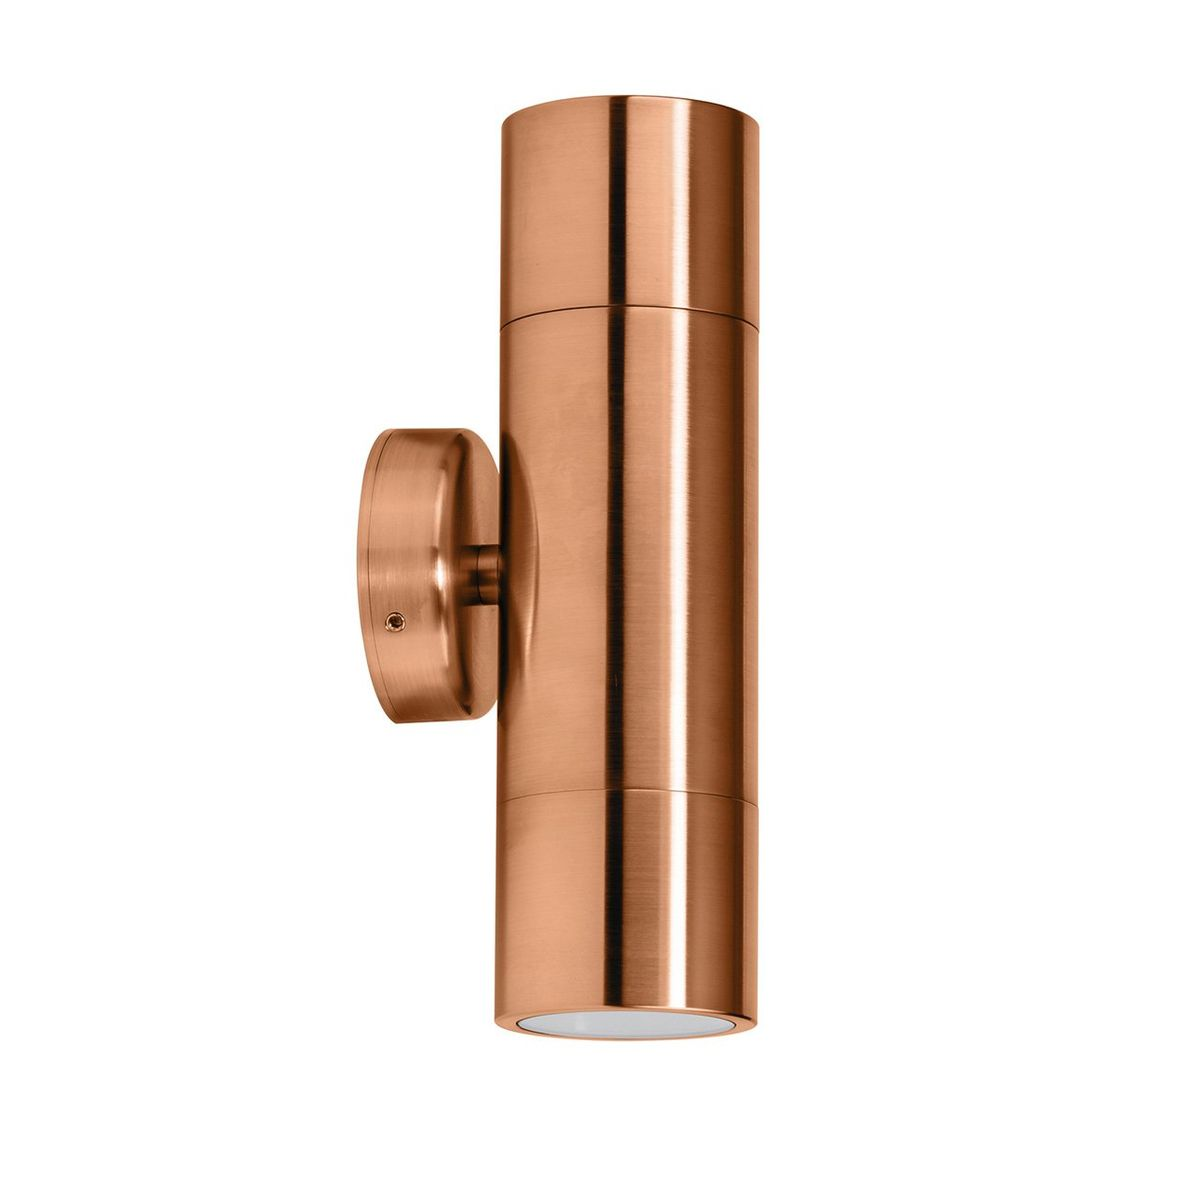 HV1015-HV1017 - Tivah Solid Copper Up & Down Wall Pillar Lights – Bild 1